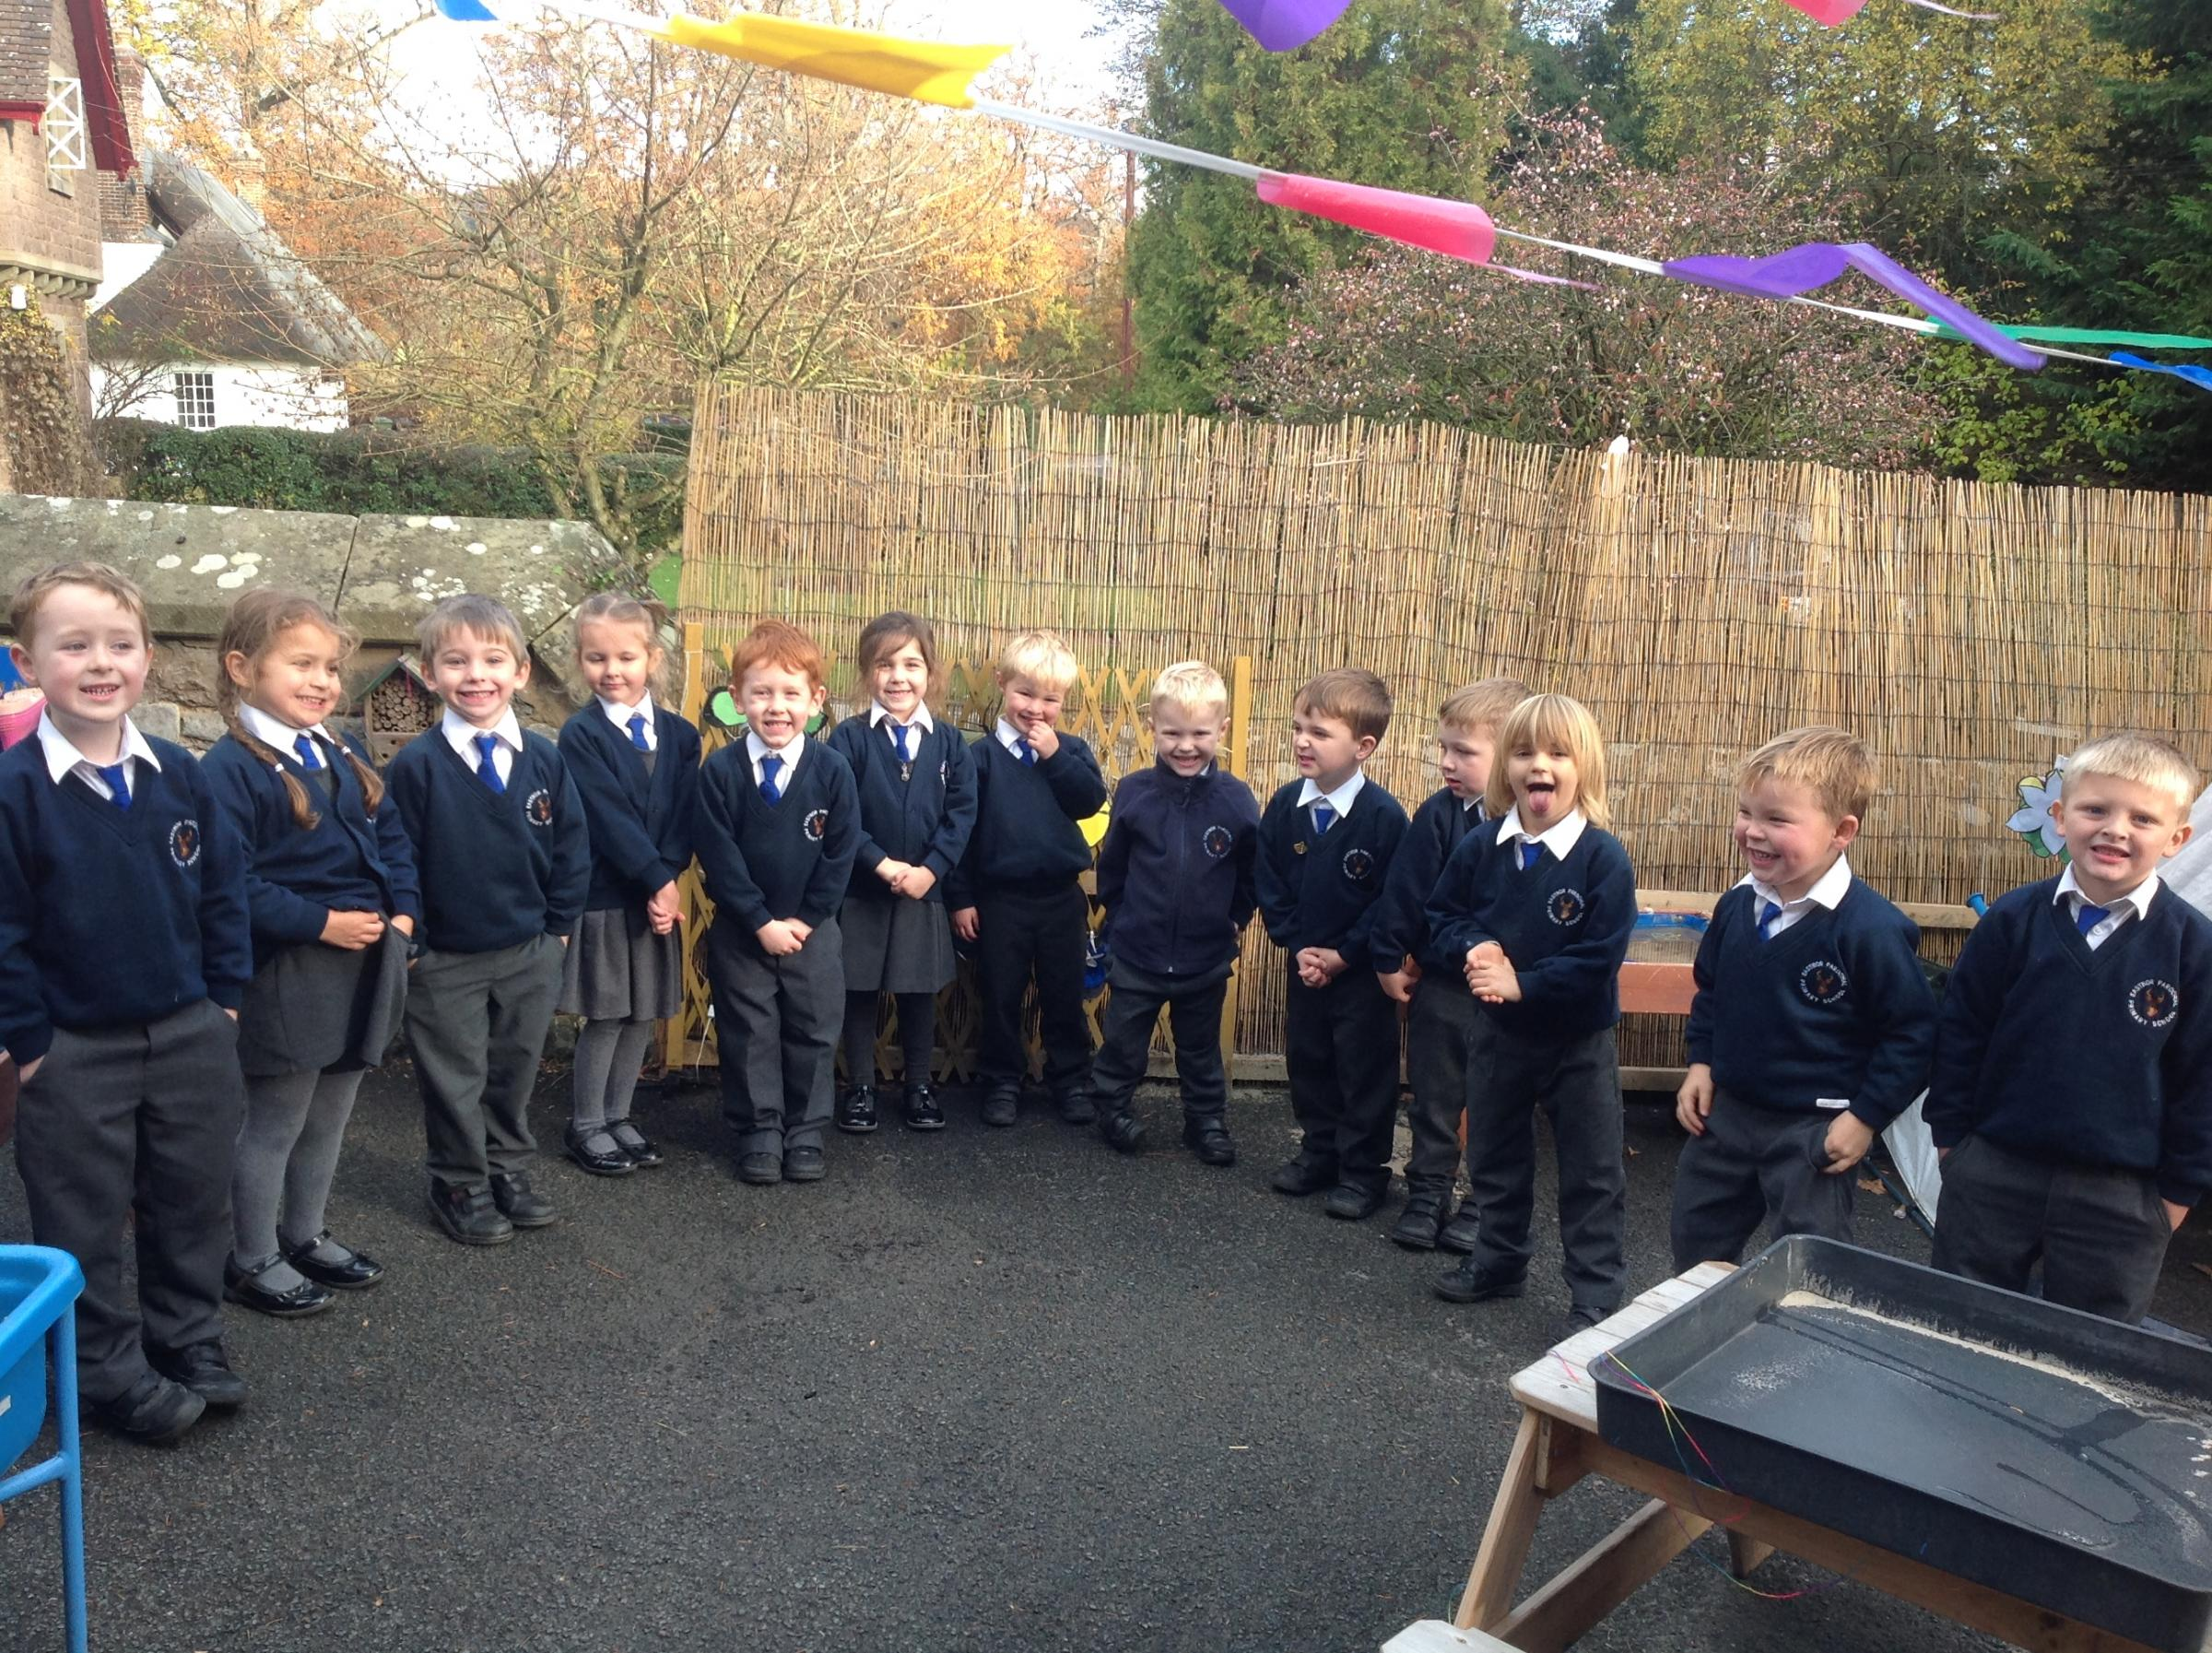 The Reception Class at Eastnor Primary School